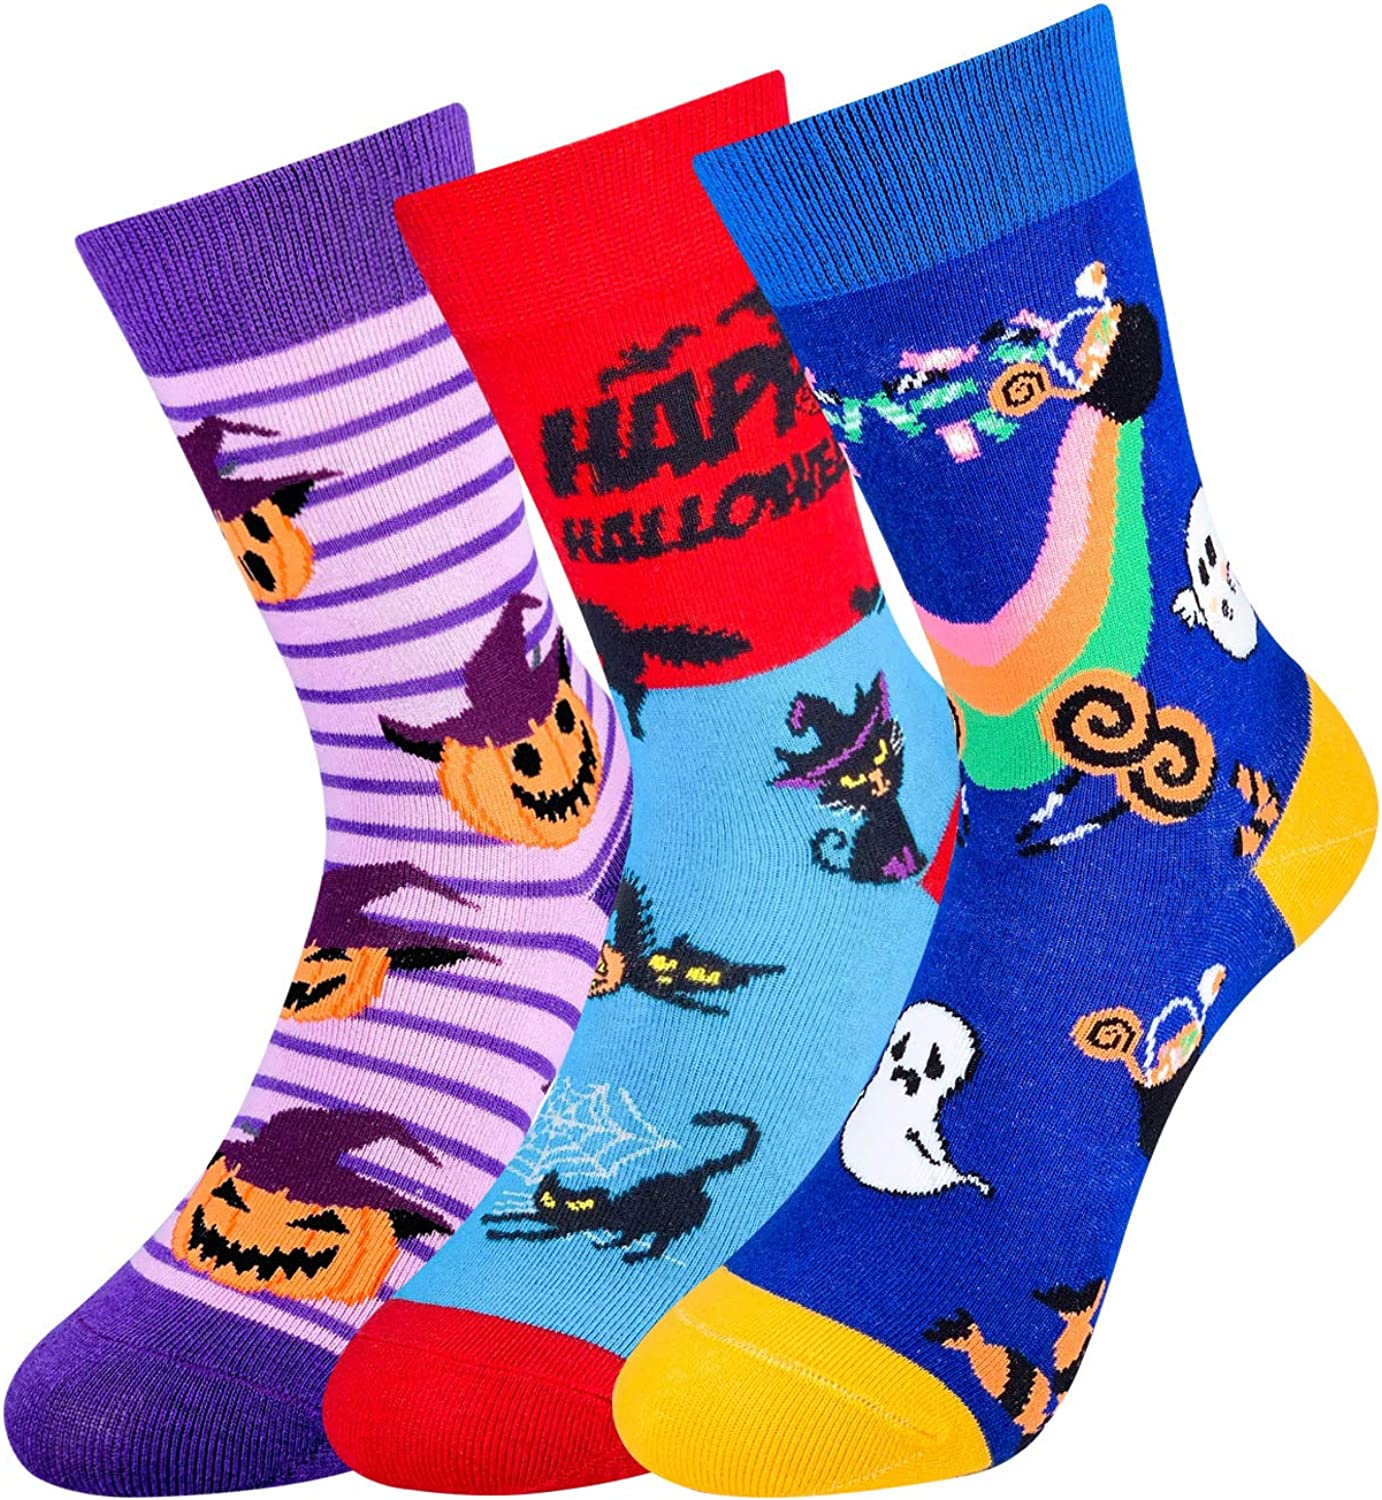 3 Pack Kids Halloween Novelty Socks Pumpkins for Costume Party Decoration